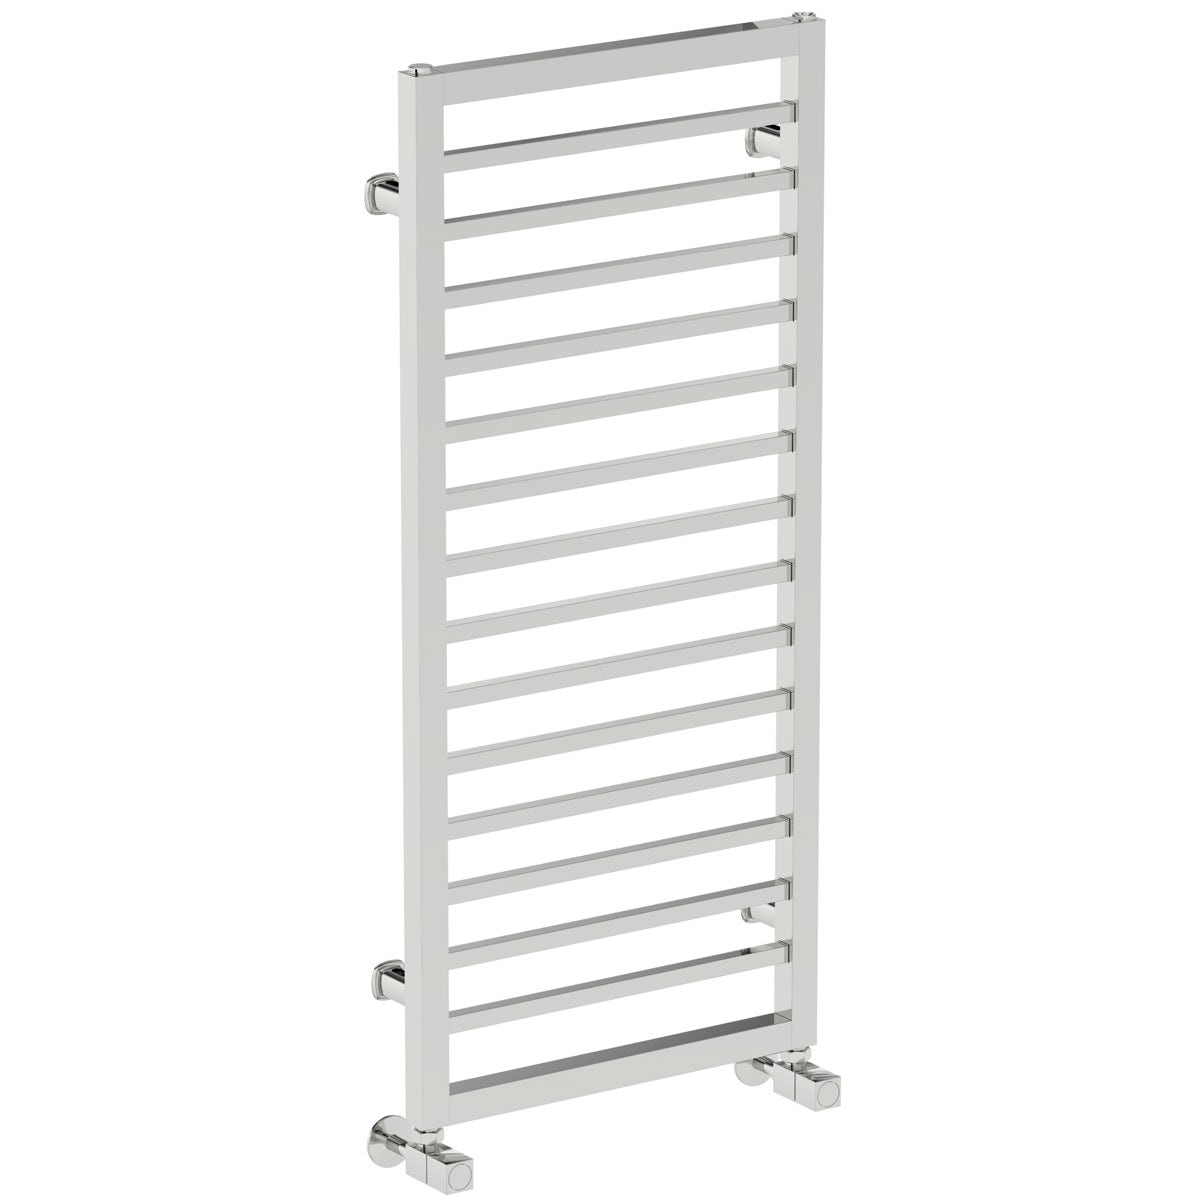 Mode Burton chrome heated towel rail 1000 x 450